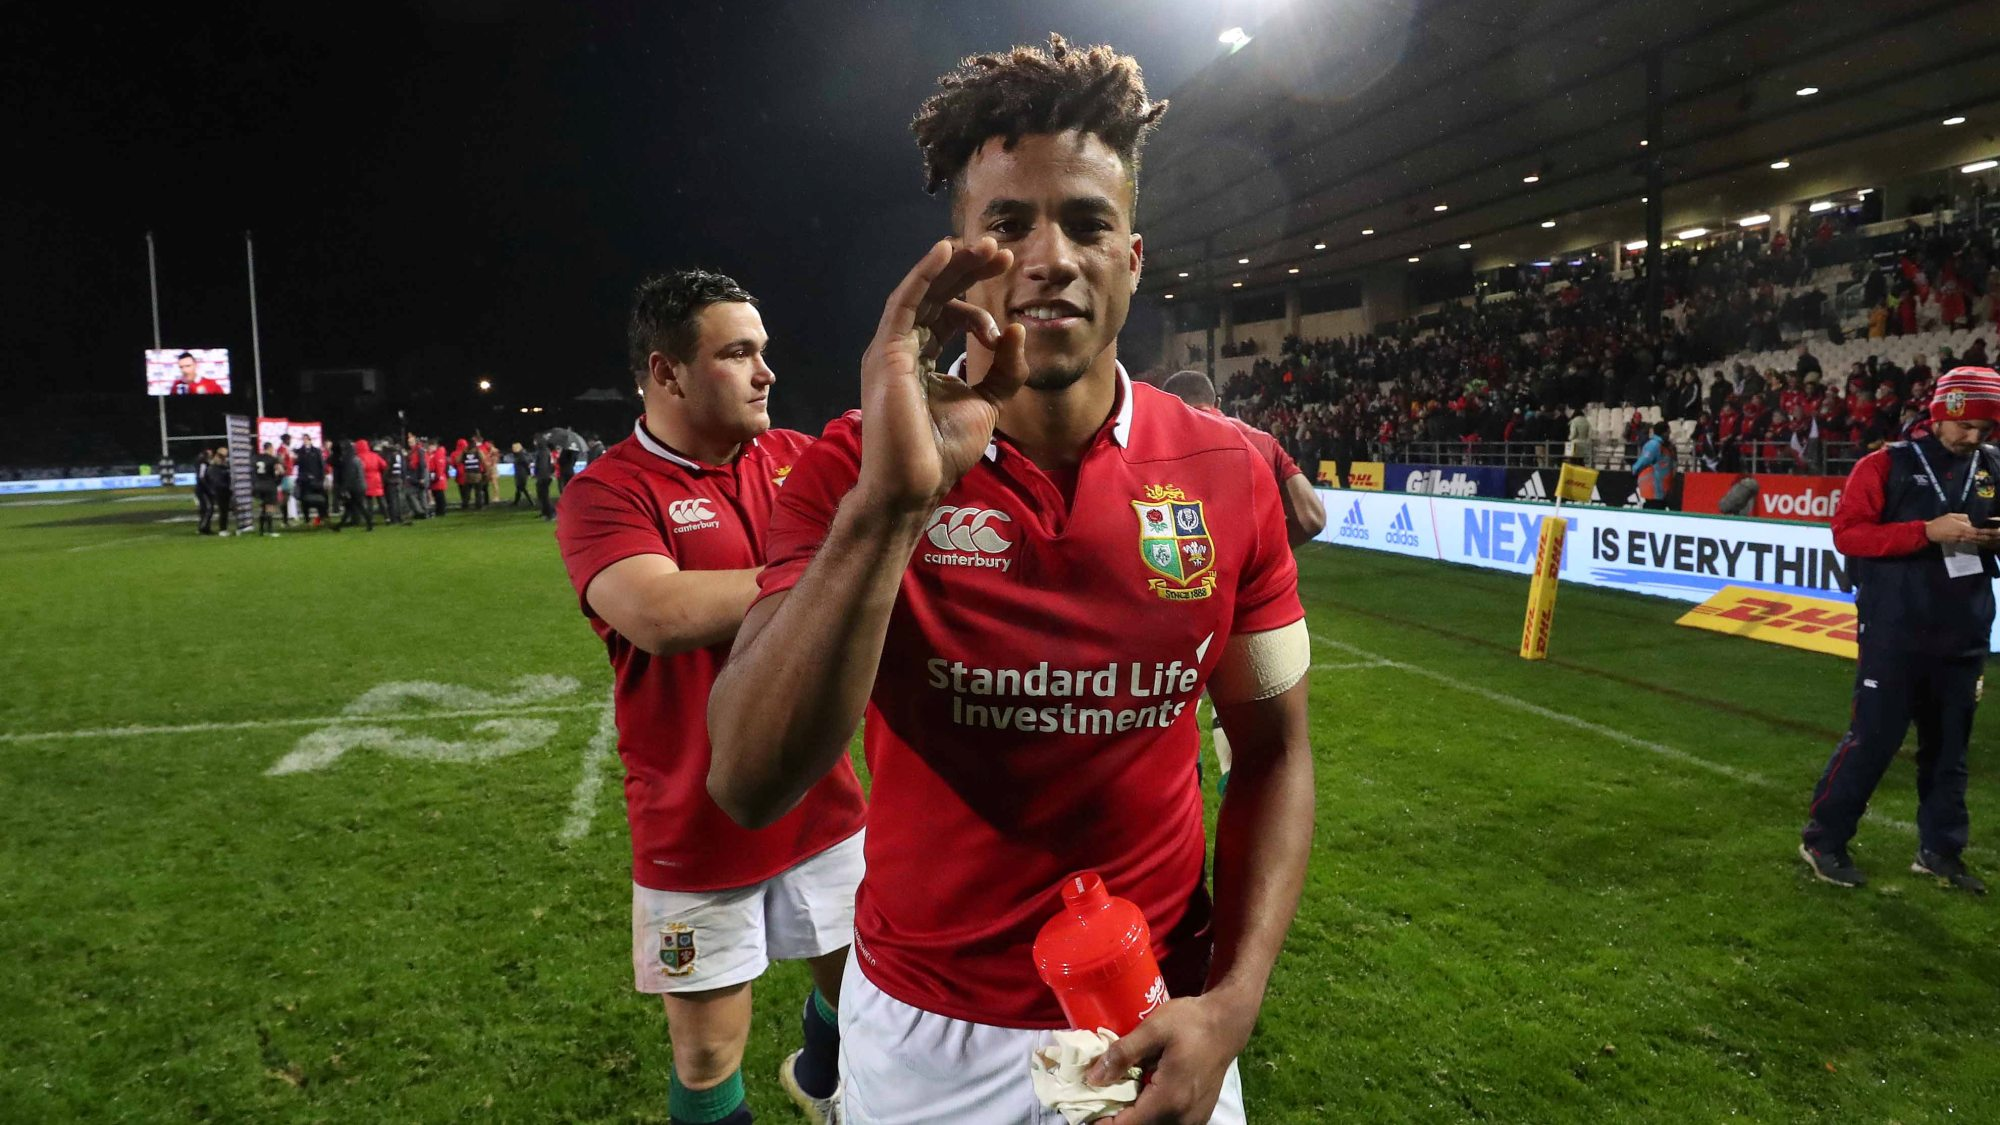 Watson delighted with Lions progress after Maori win